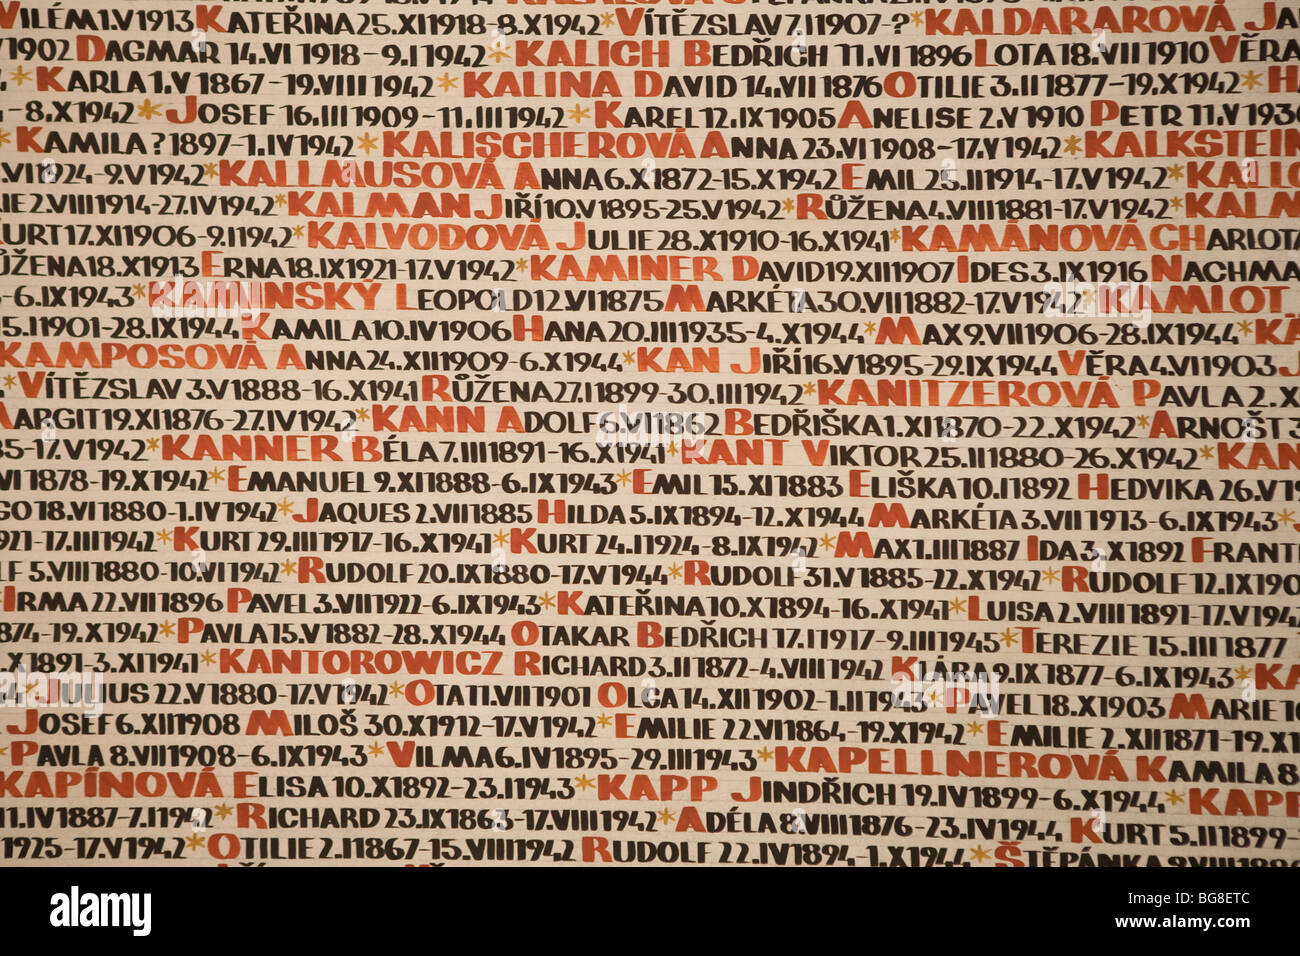 List of names of Jewish people killed by the Nazis in World